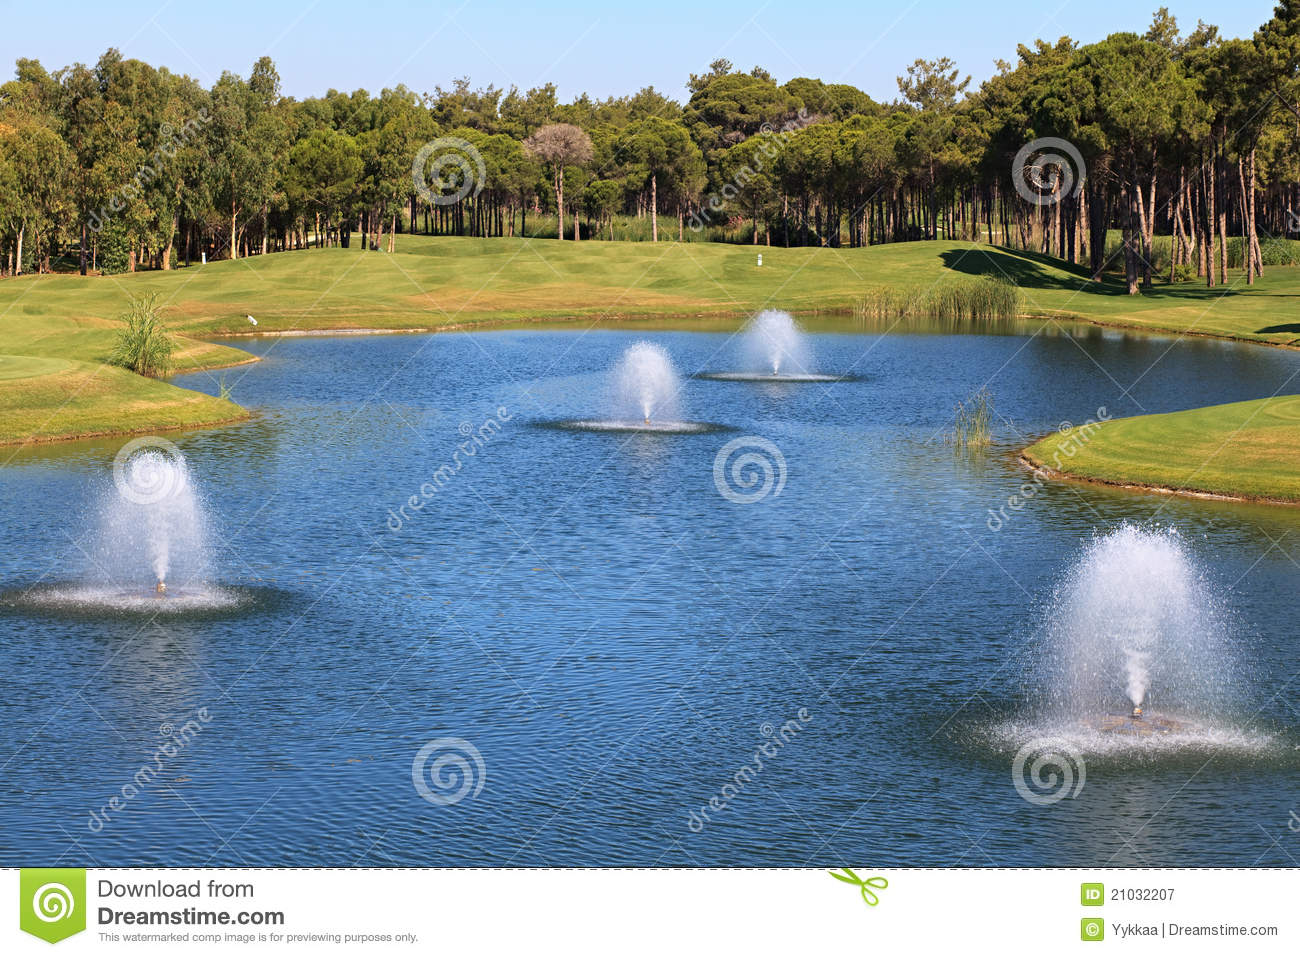 Cafe on the artificial pond stock image cartoondealer for Artificial pond water